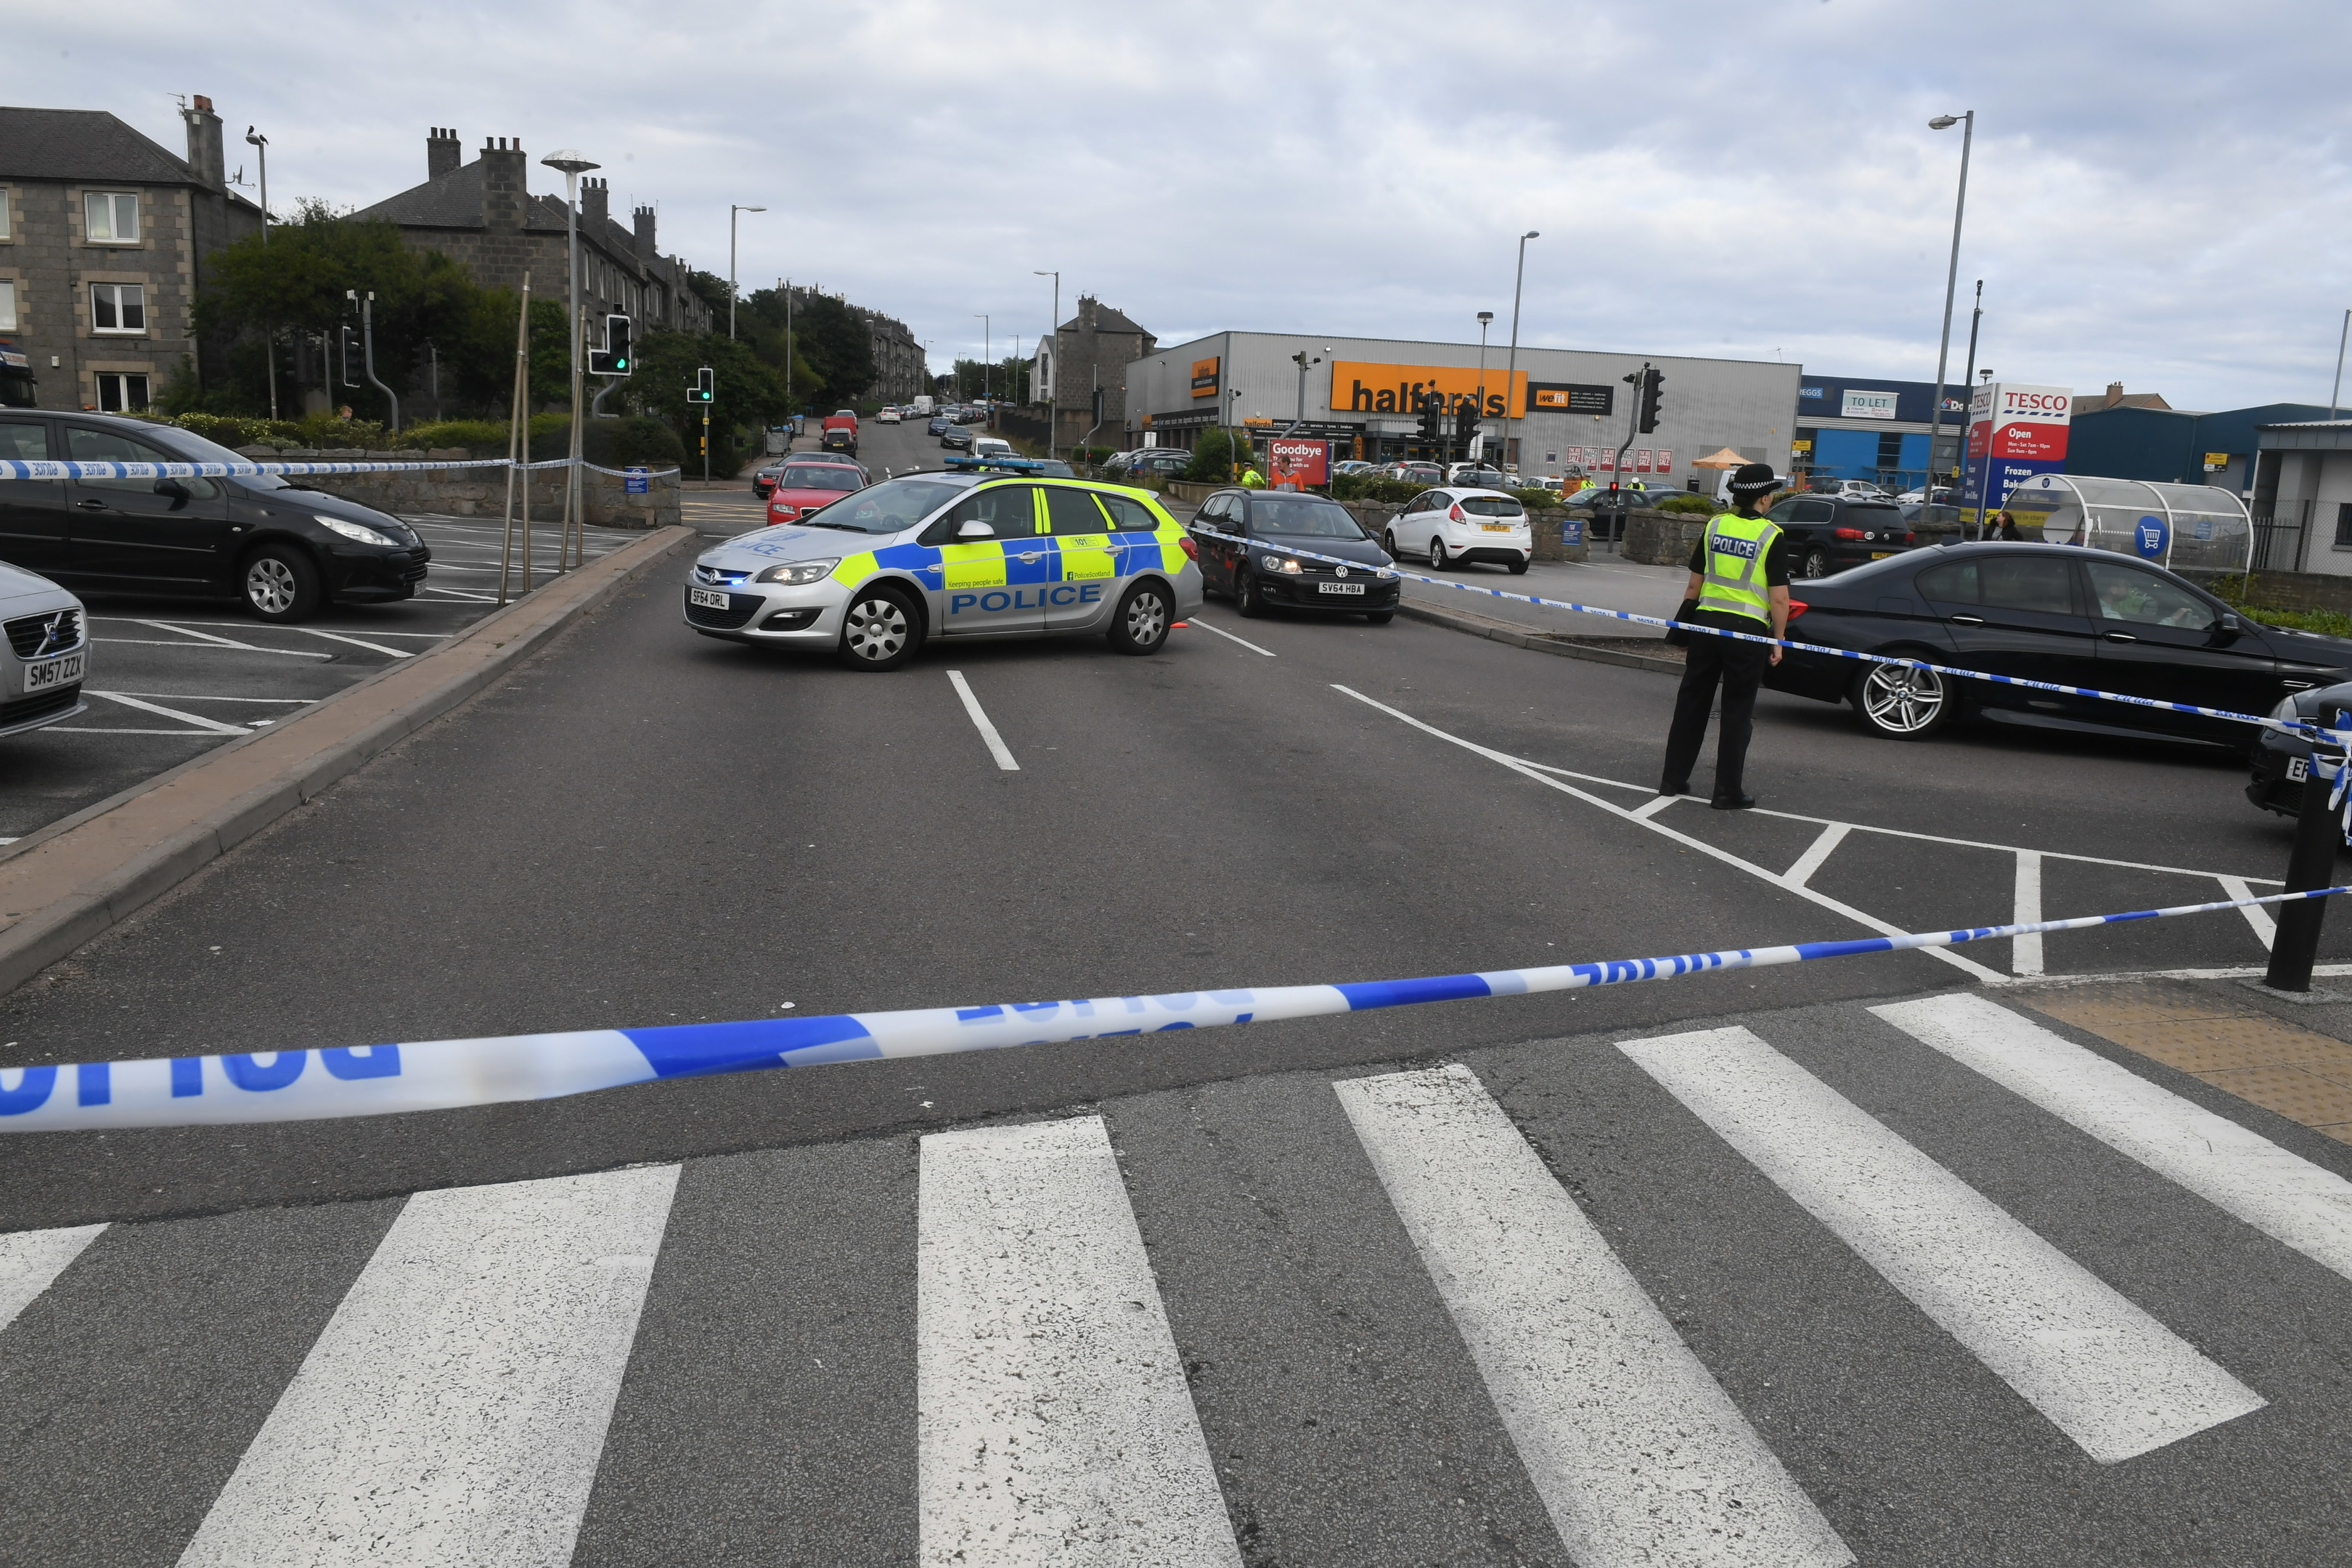 Police have sealed off part of the Tesco car park on Wellington Road